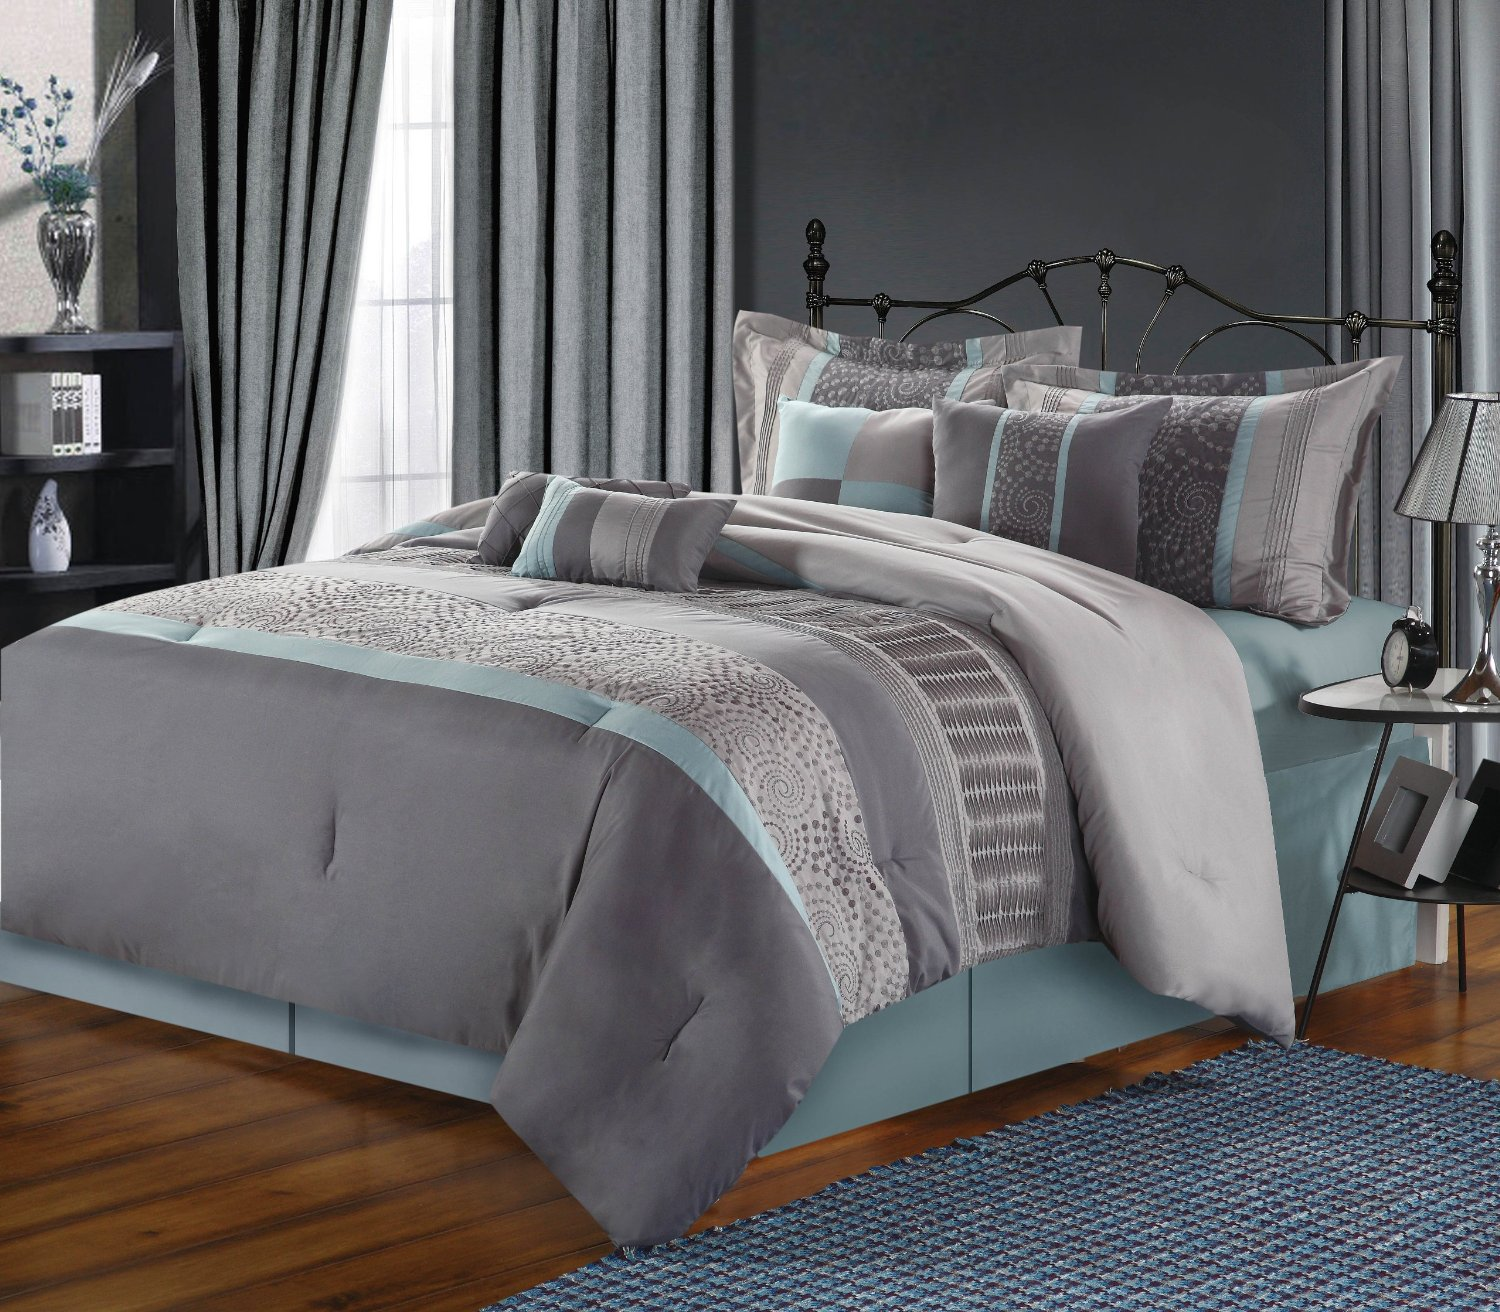 TEAL AND GREY CPMFPRTER BEDDING